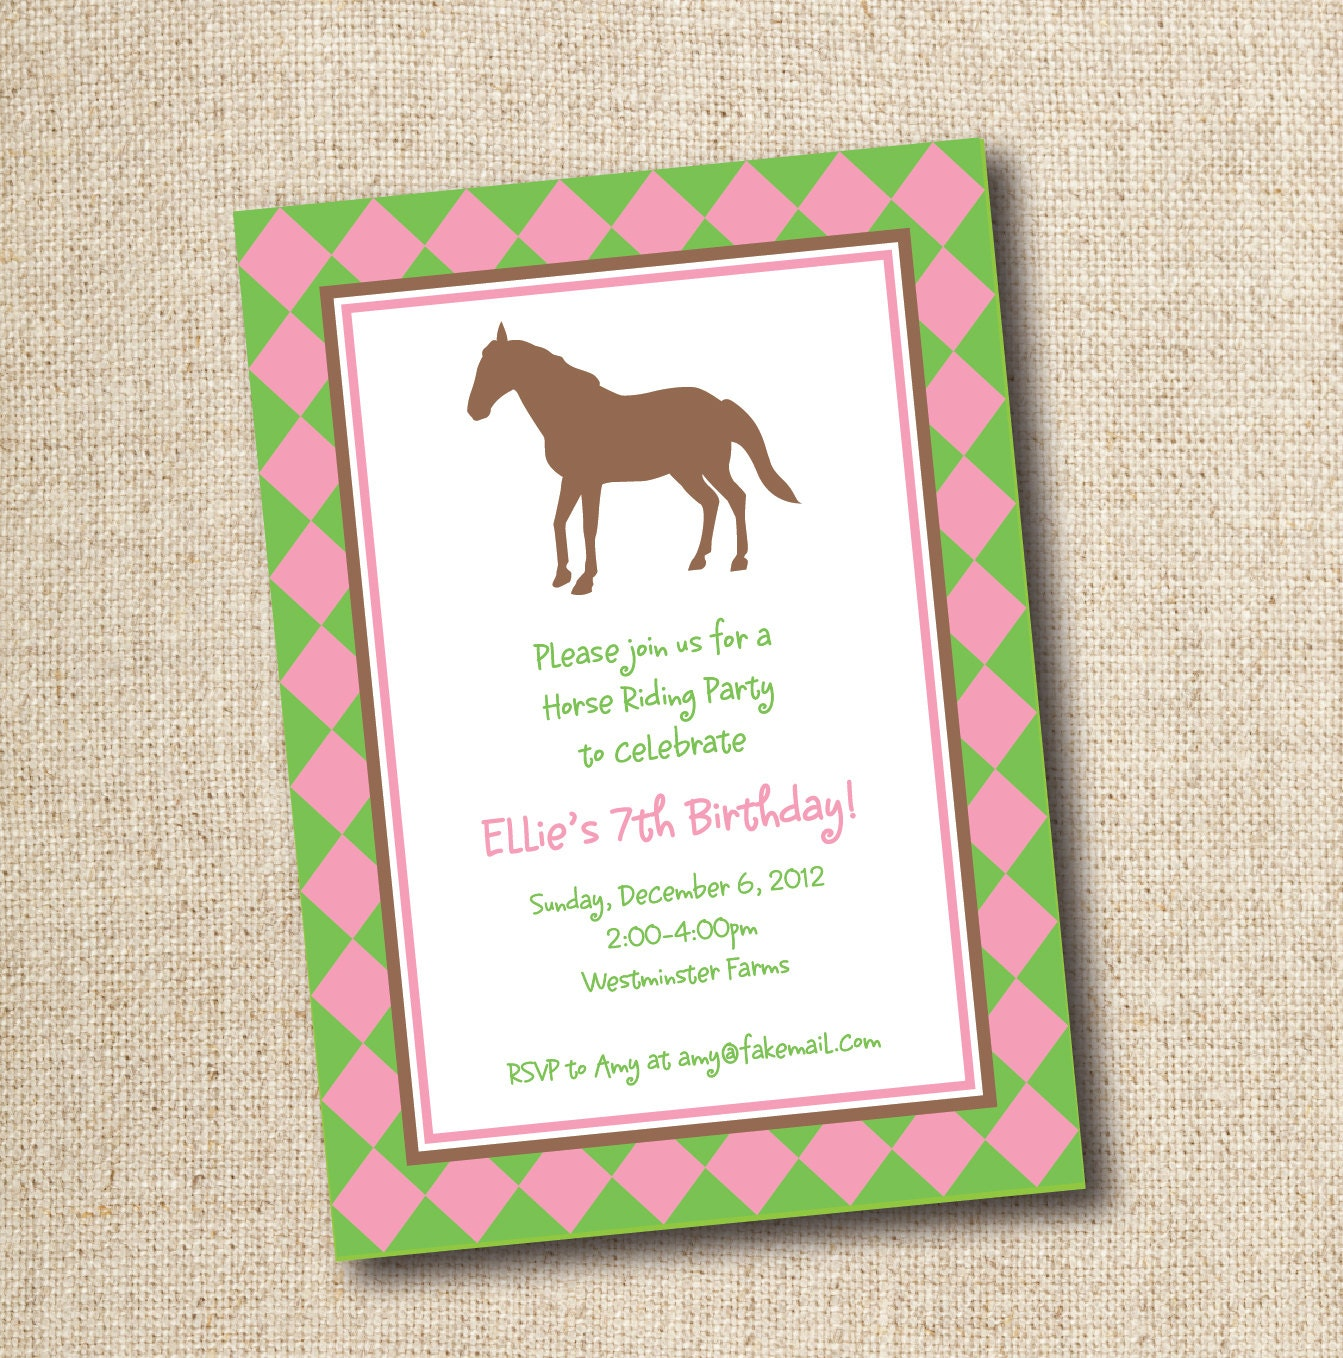 Horseback riding birthday party invitation custom printable